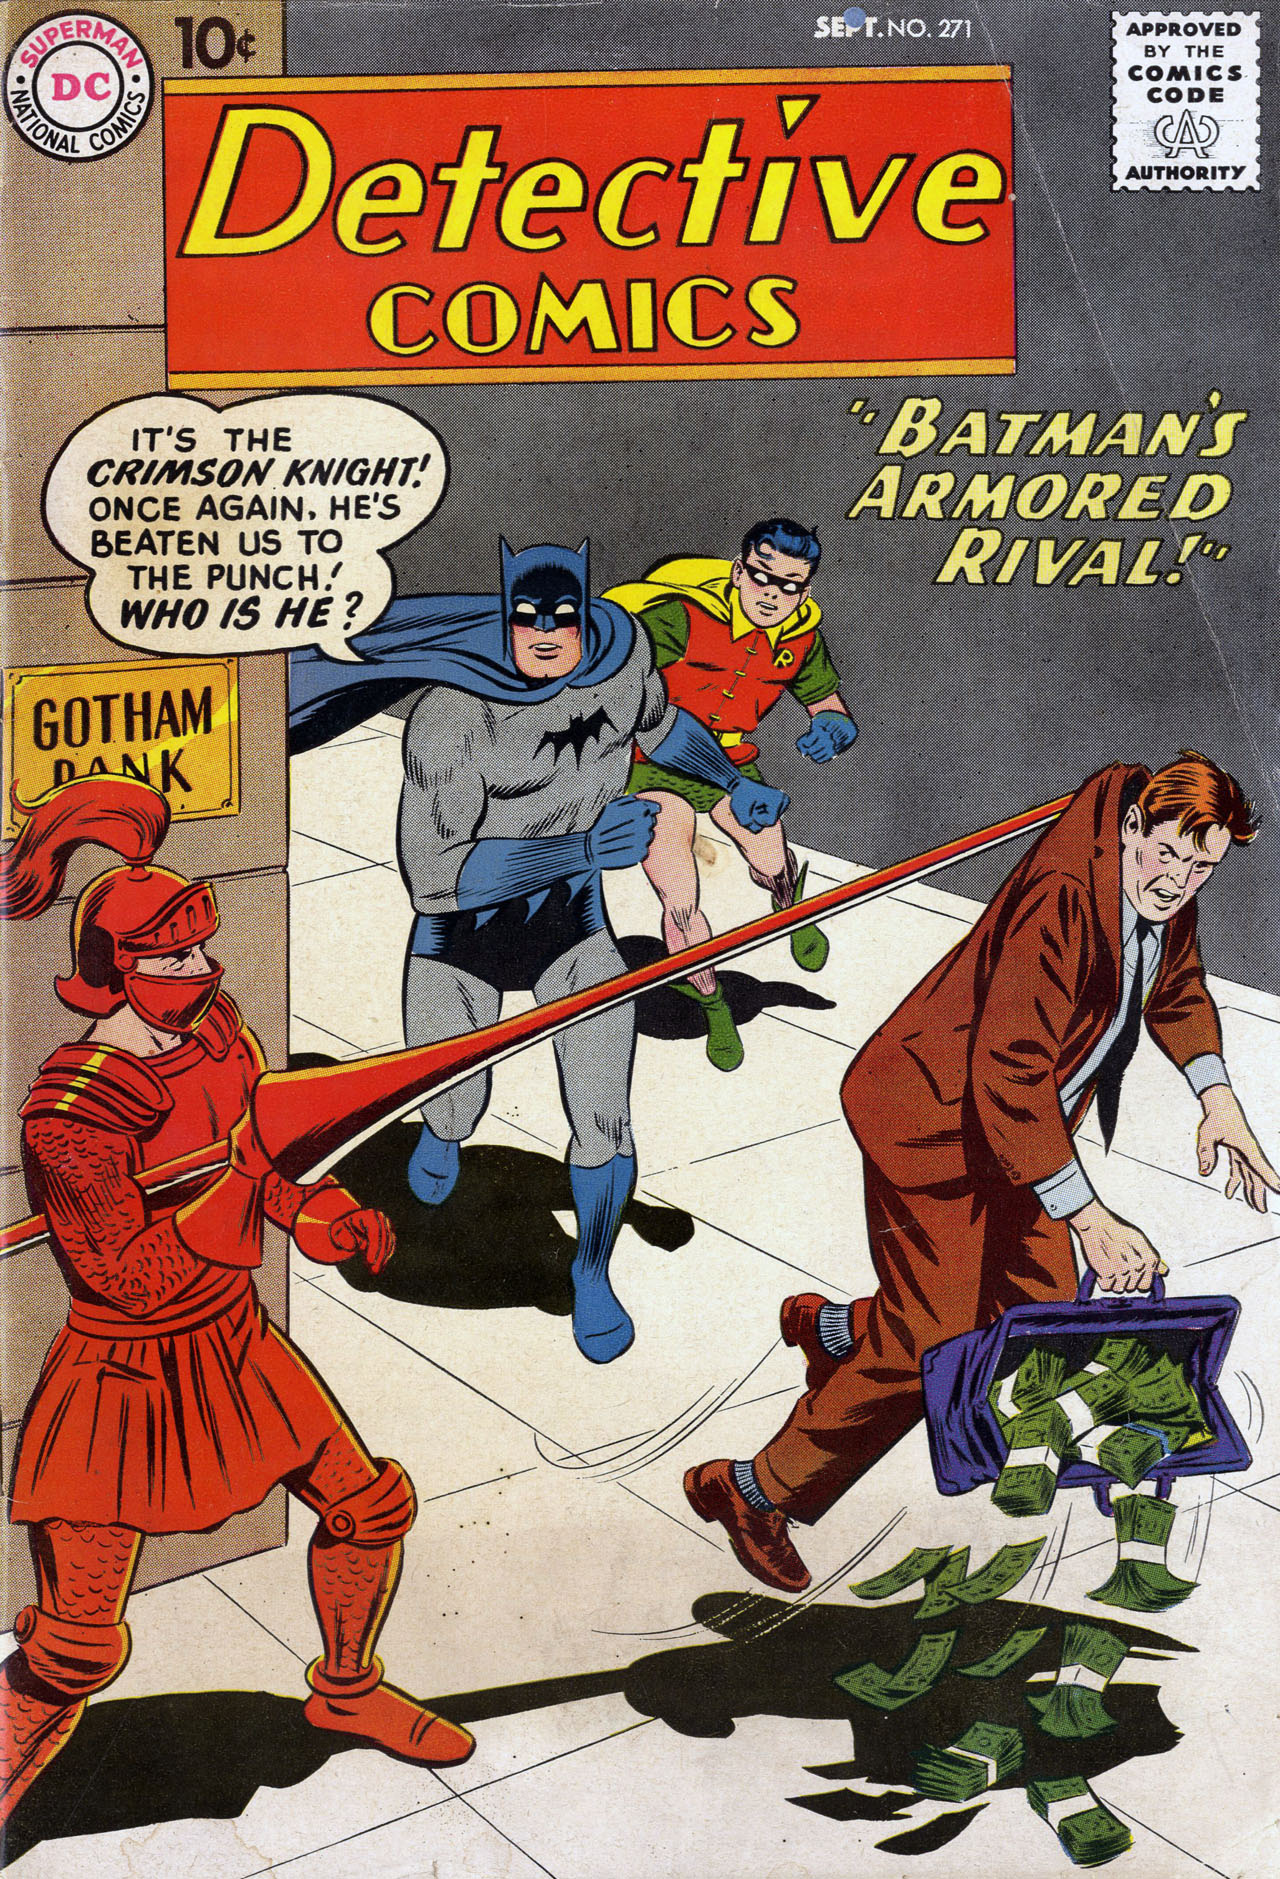 Read online Detective Comics (1937) comic -  Issue #271 - 1